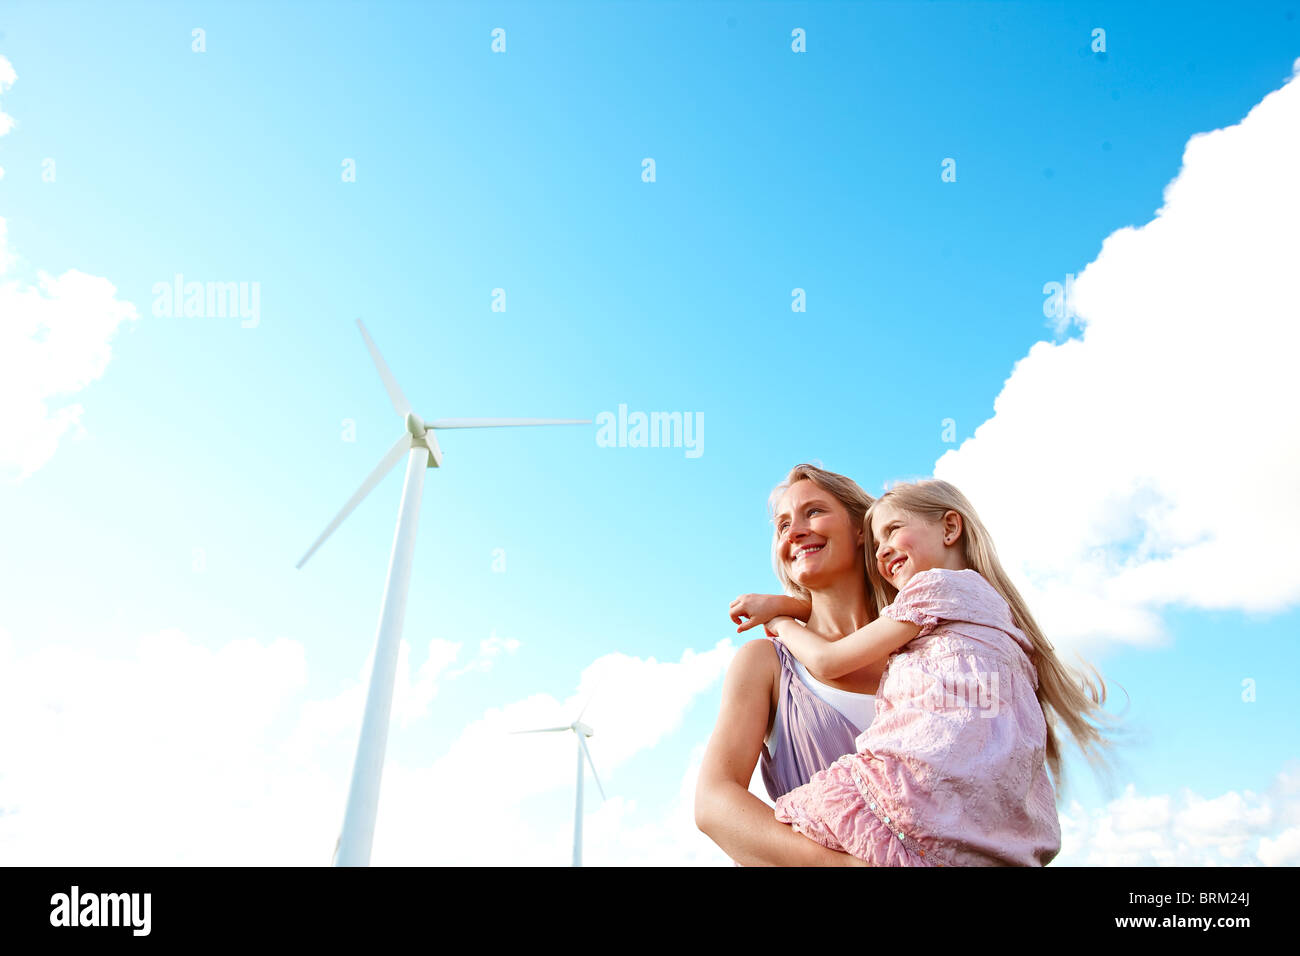 Mother and daughter at wind turbine - Stock Image